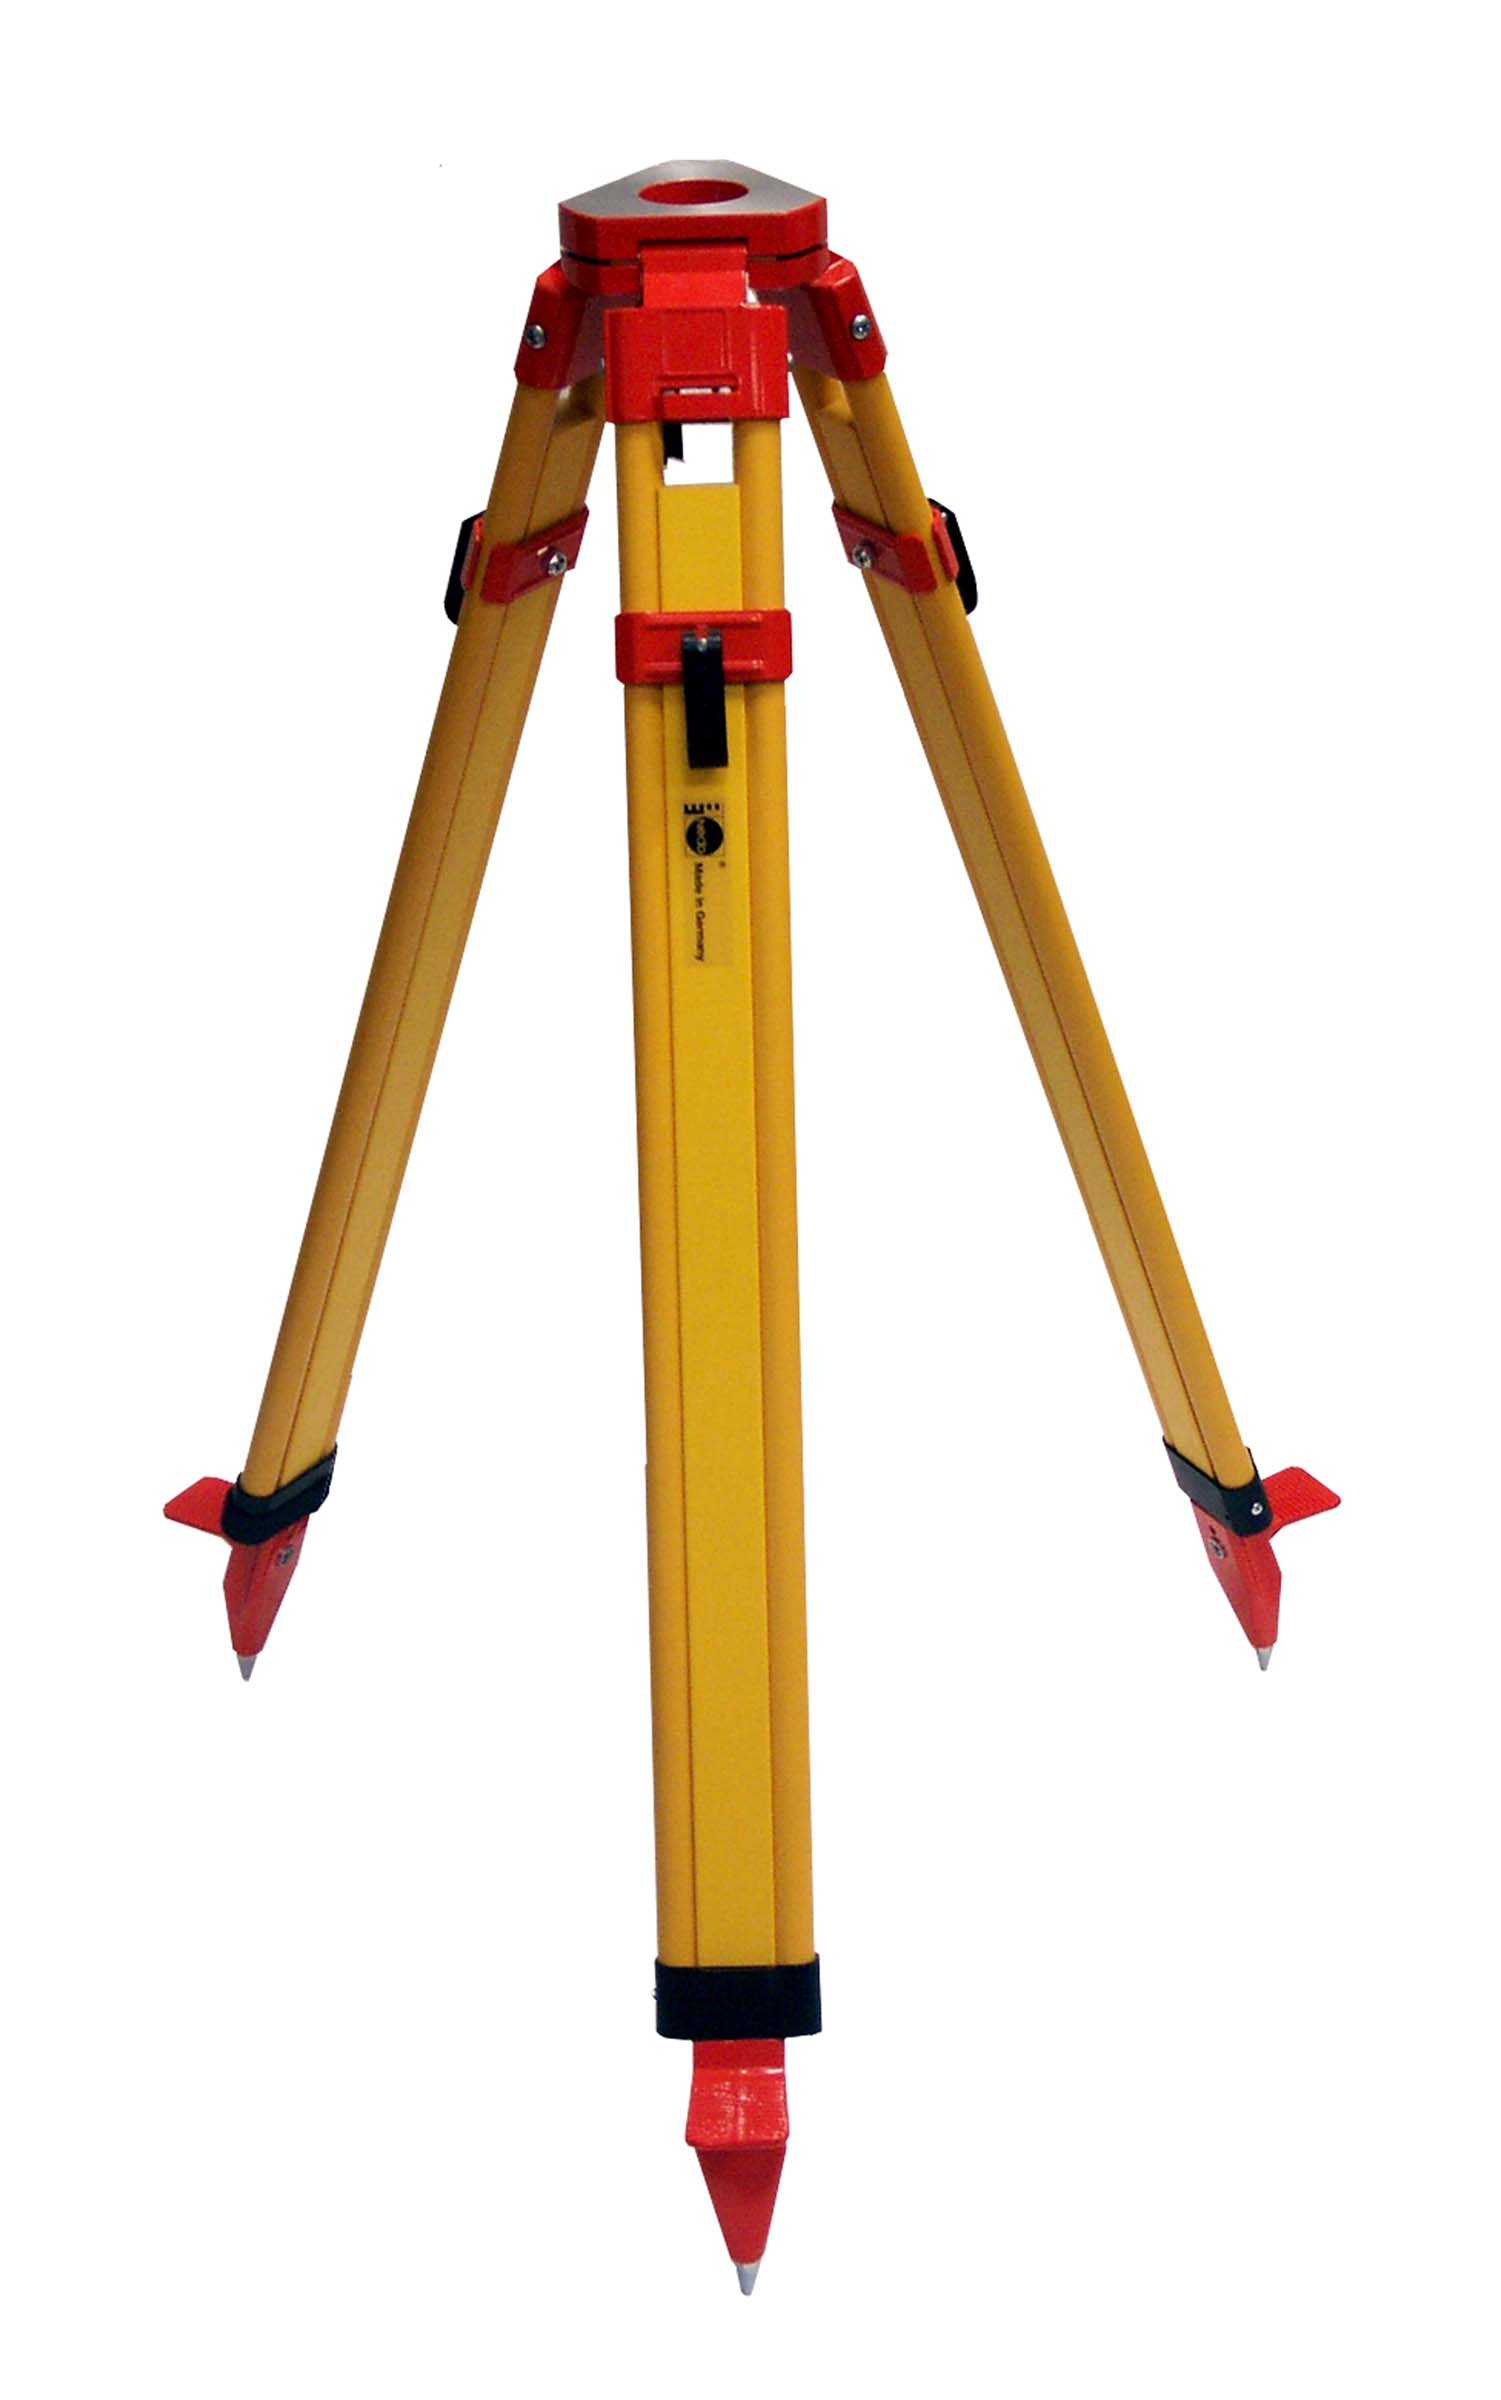 NEDO Heavy-Duty Wooden Tripod with Quick Clamp